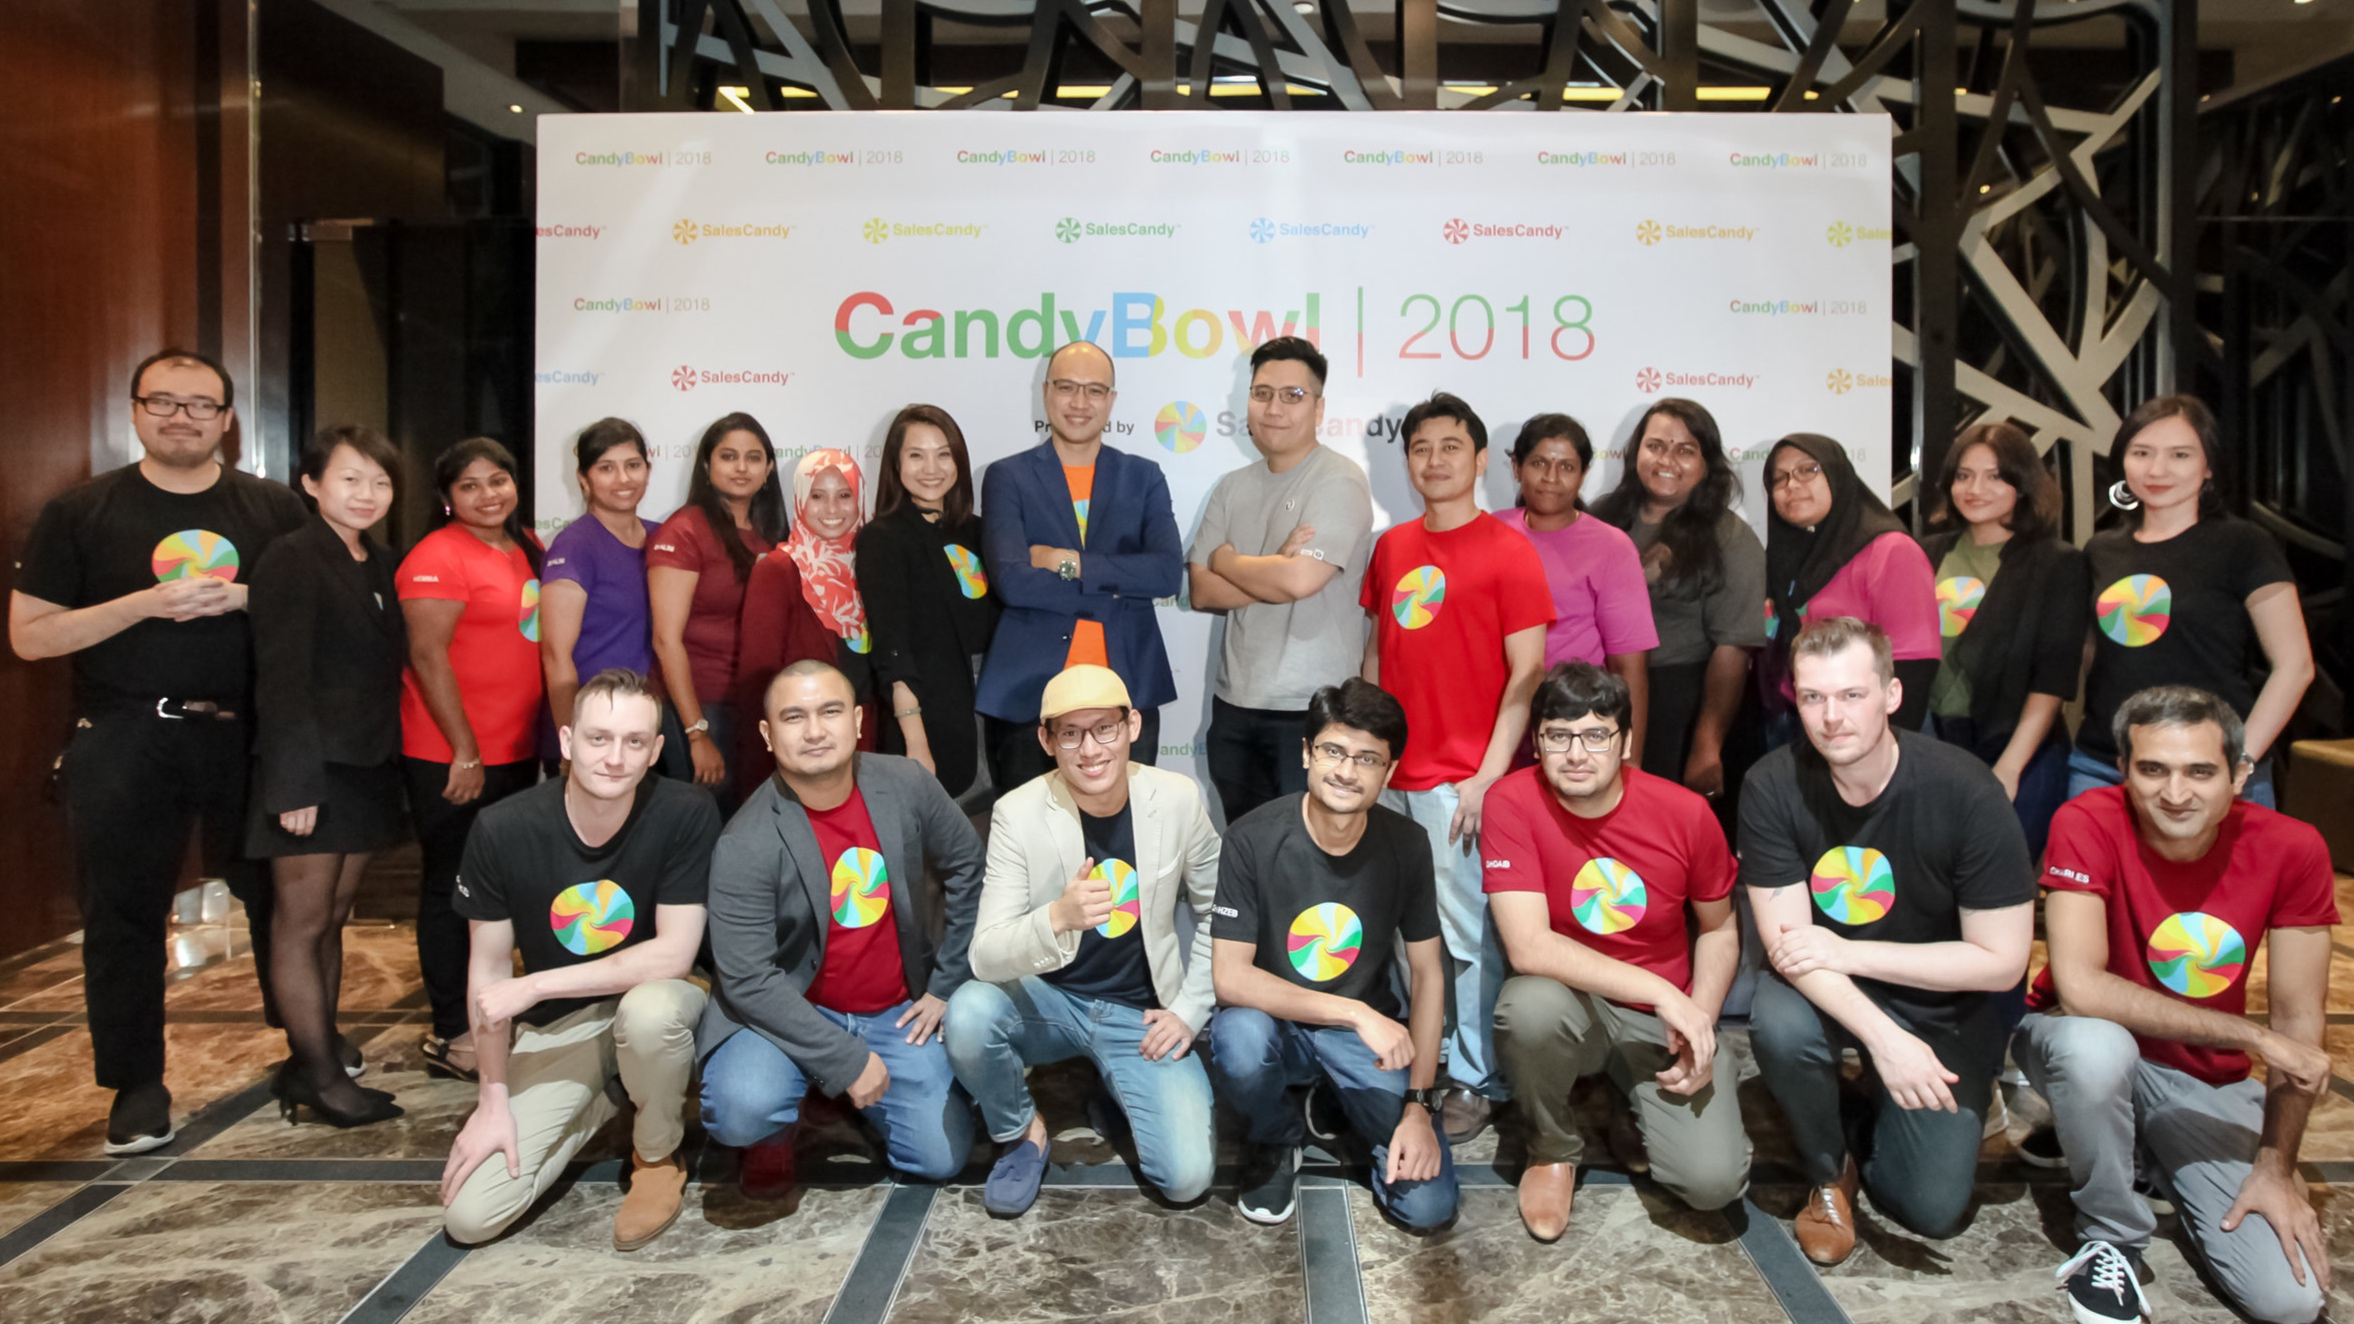 salescandy-team-candyholics-group-photo.jpg